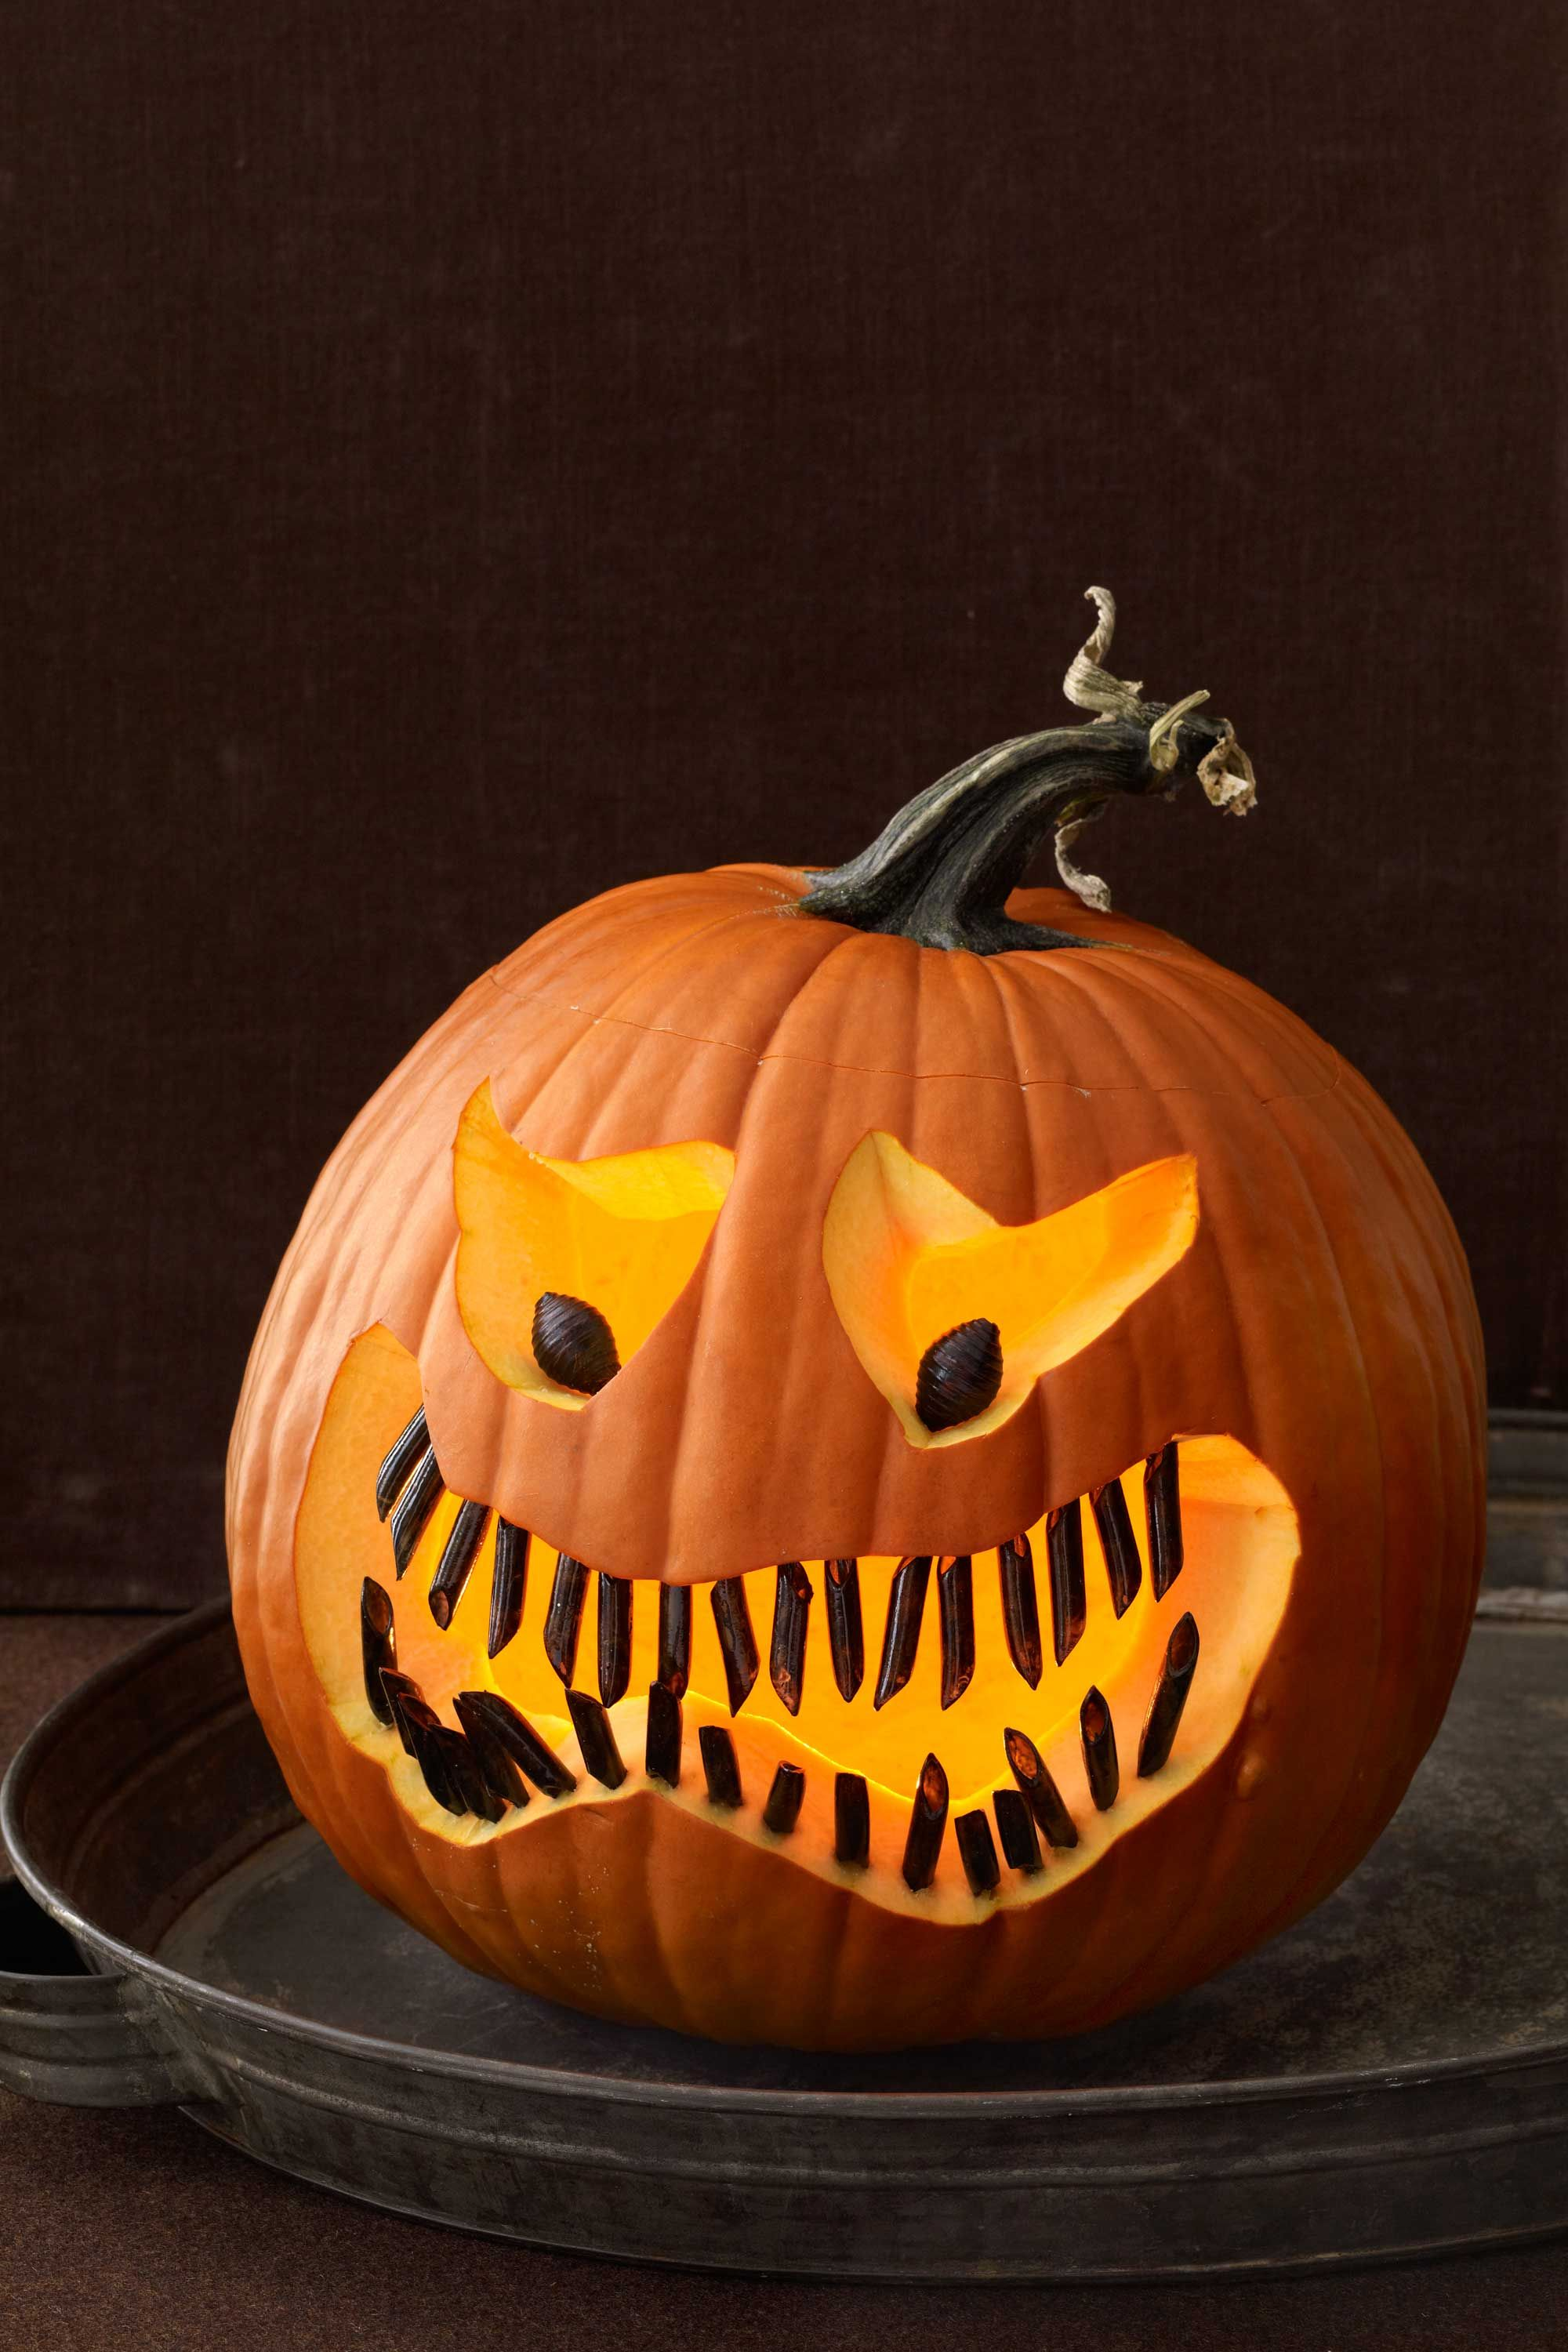 60 PUMPKIN CARVING IDEAS CREATIVE JACK O LANTERN DESIGNS